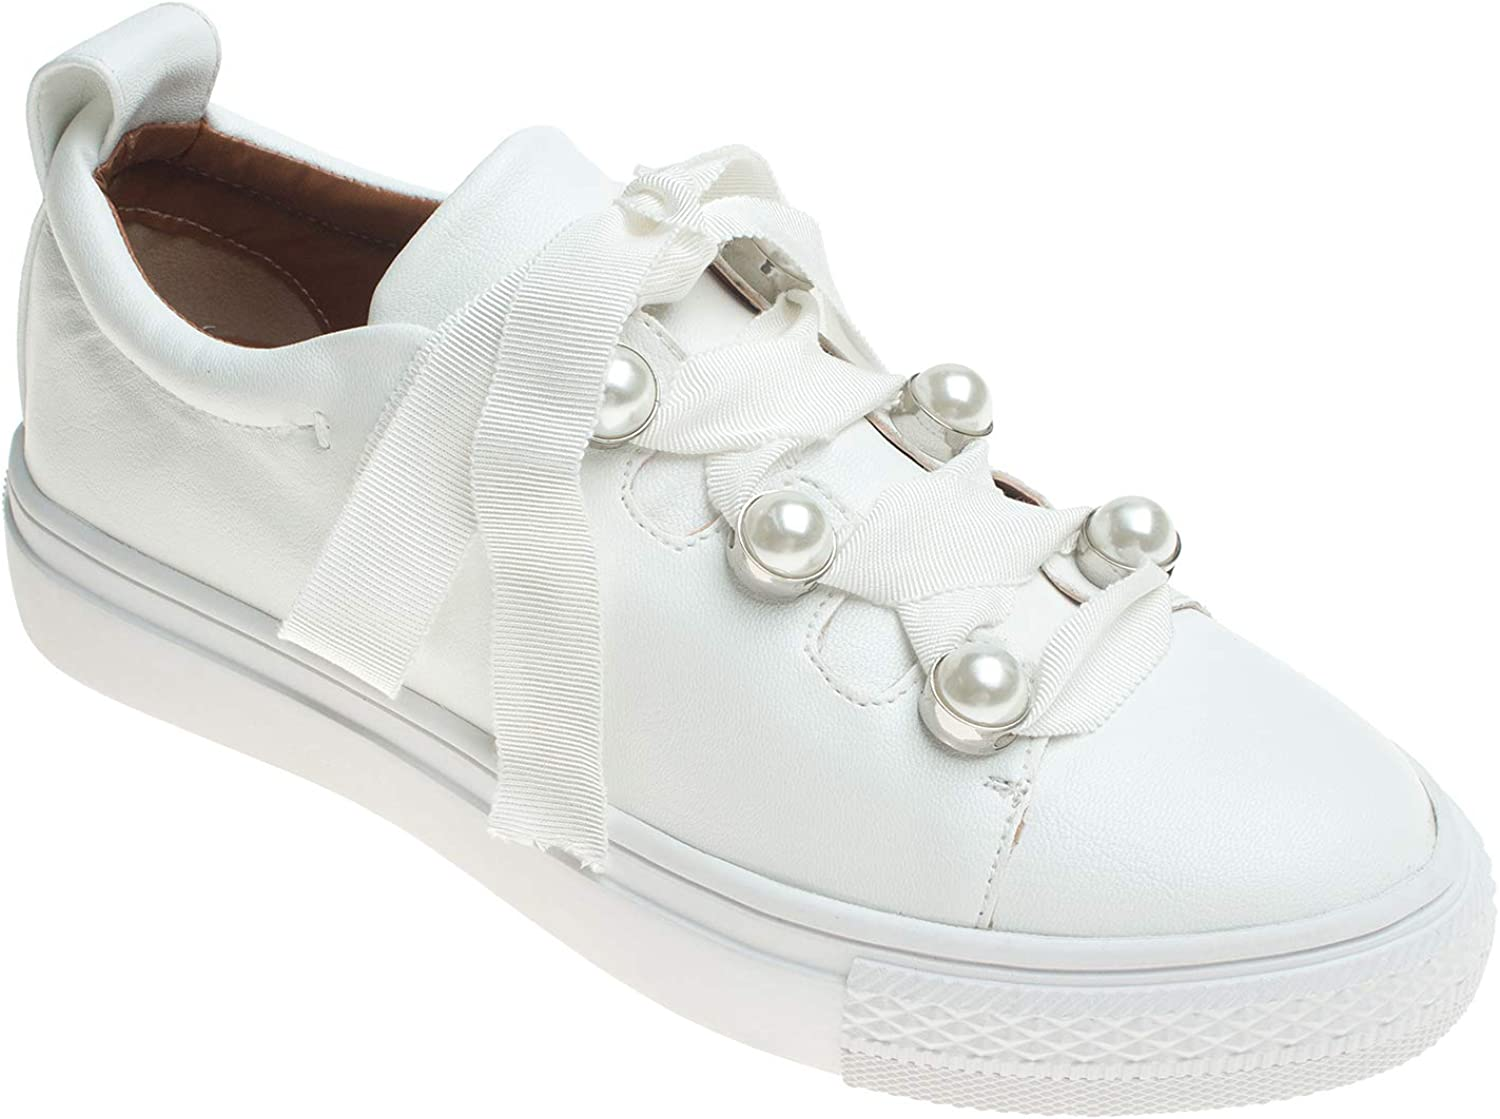 AnnaKastle Womens Pearl Lace up Low Top Sneaker Trainers White